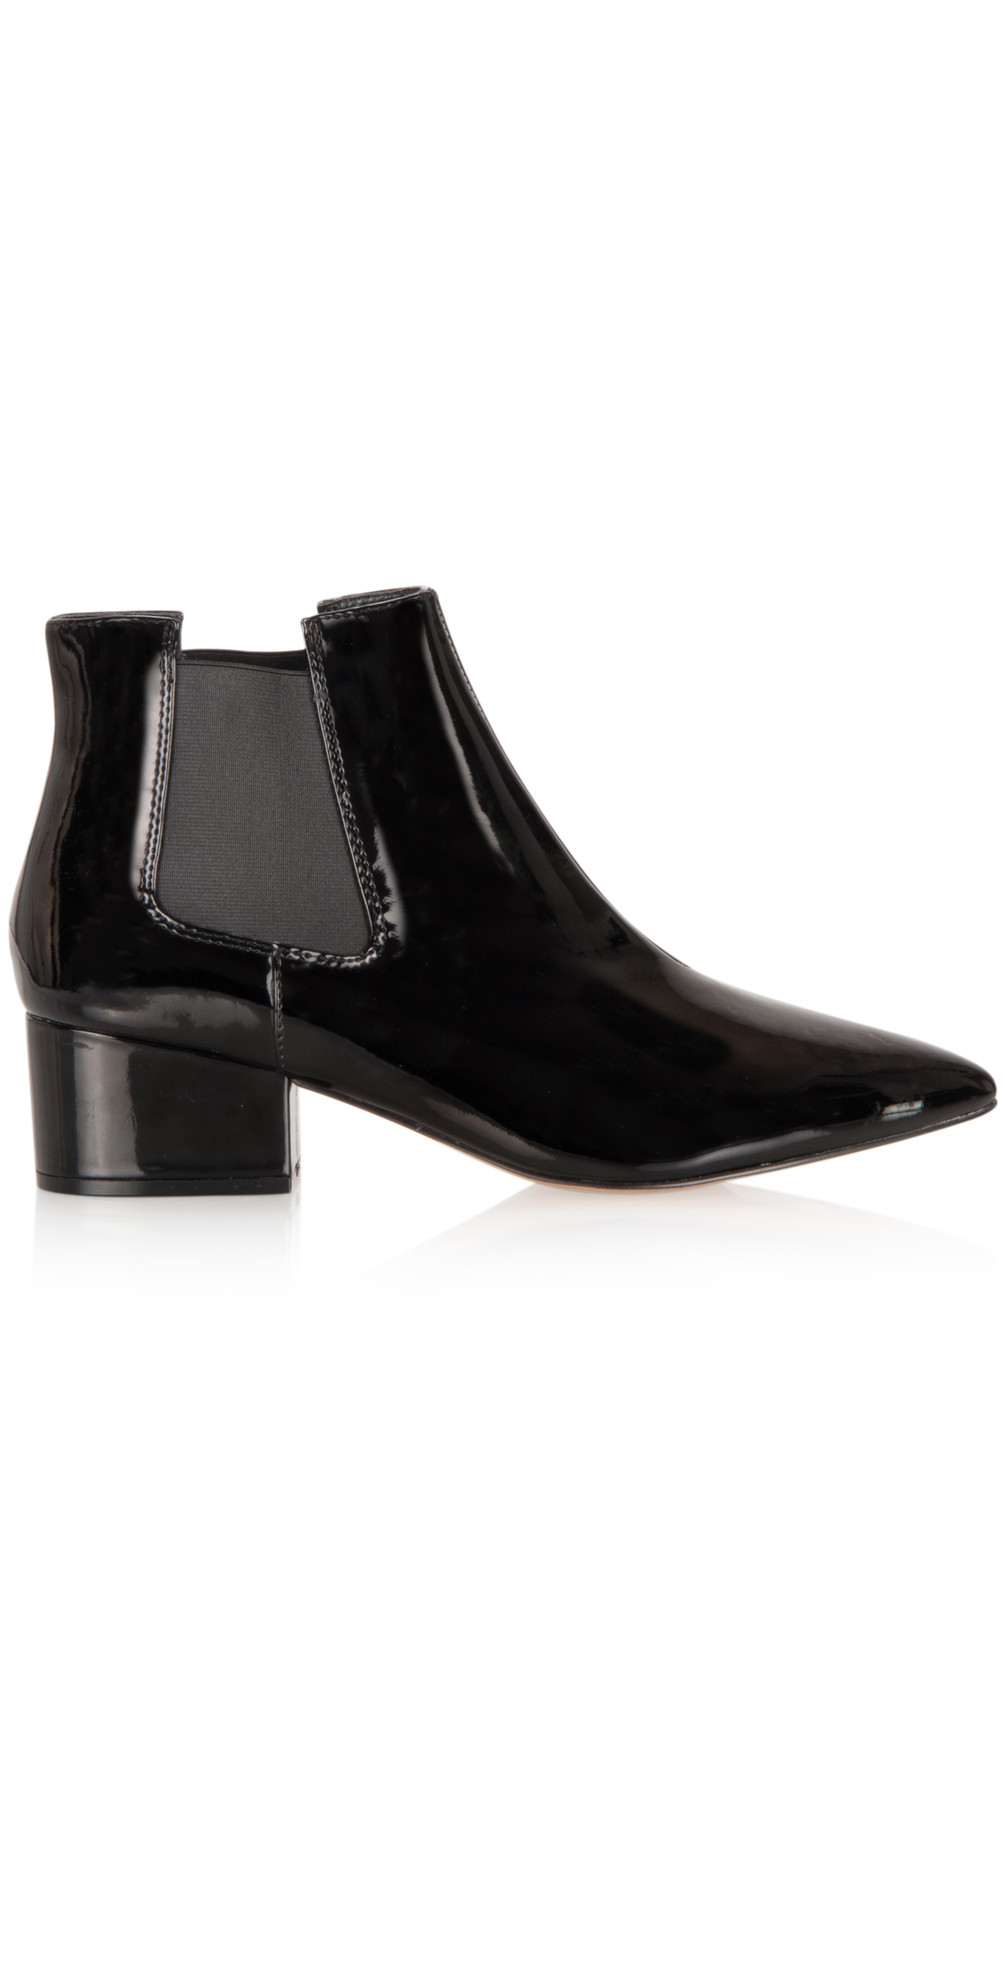 bc47115bfd4 French Connection Shoes Ronan Patent Ankle Boot in Black